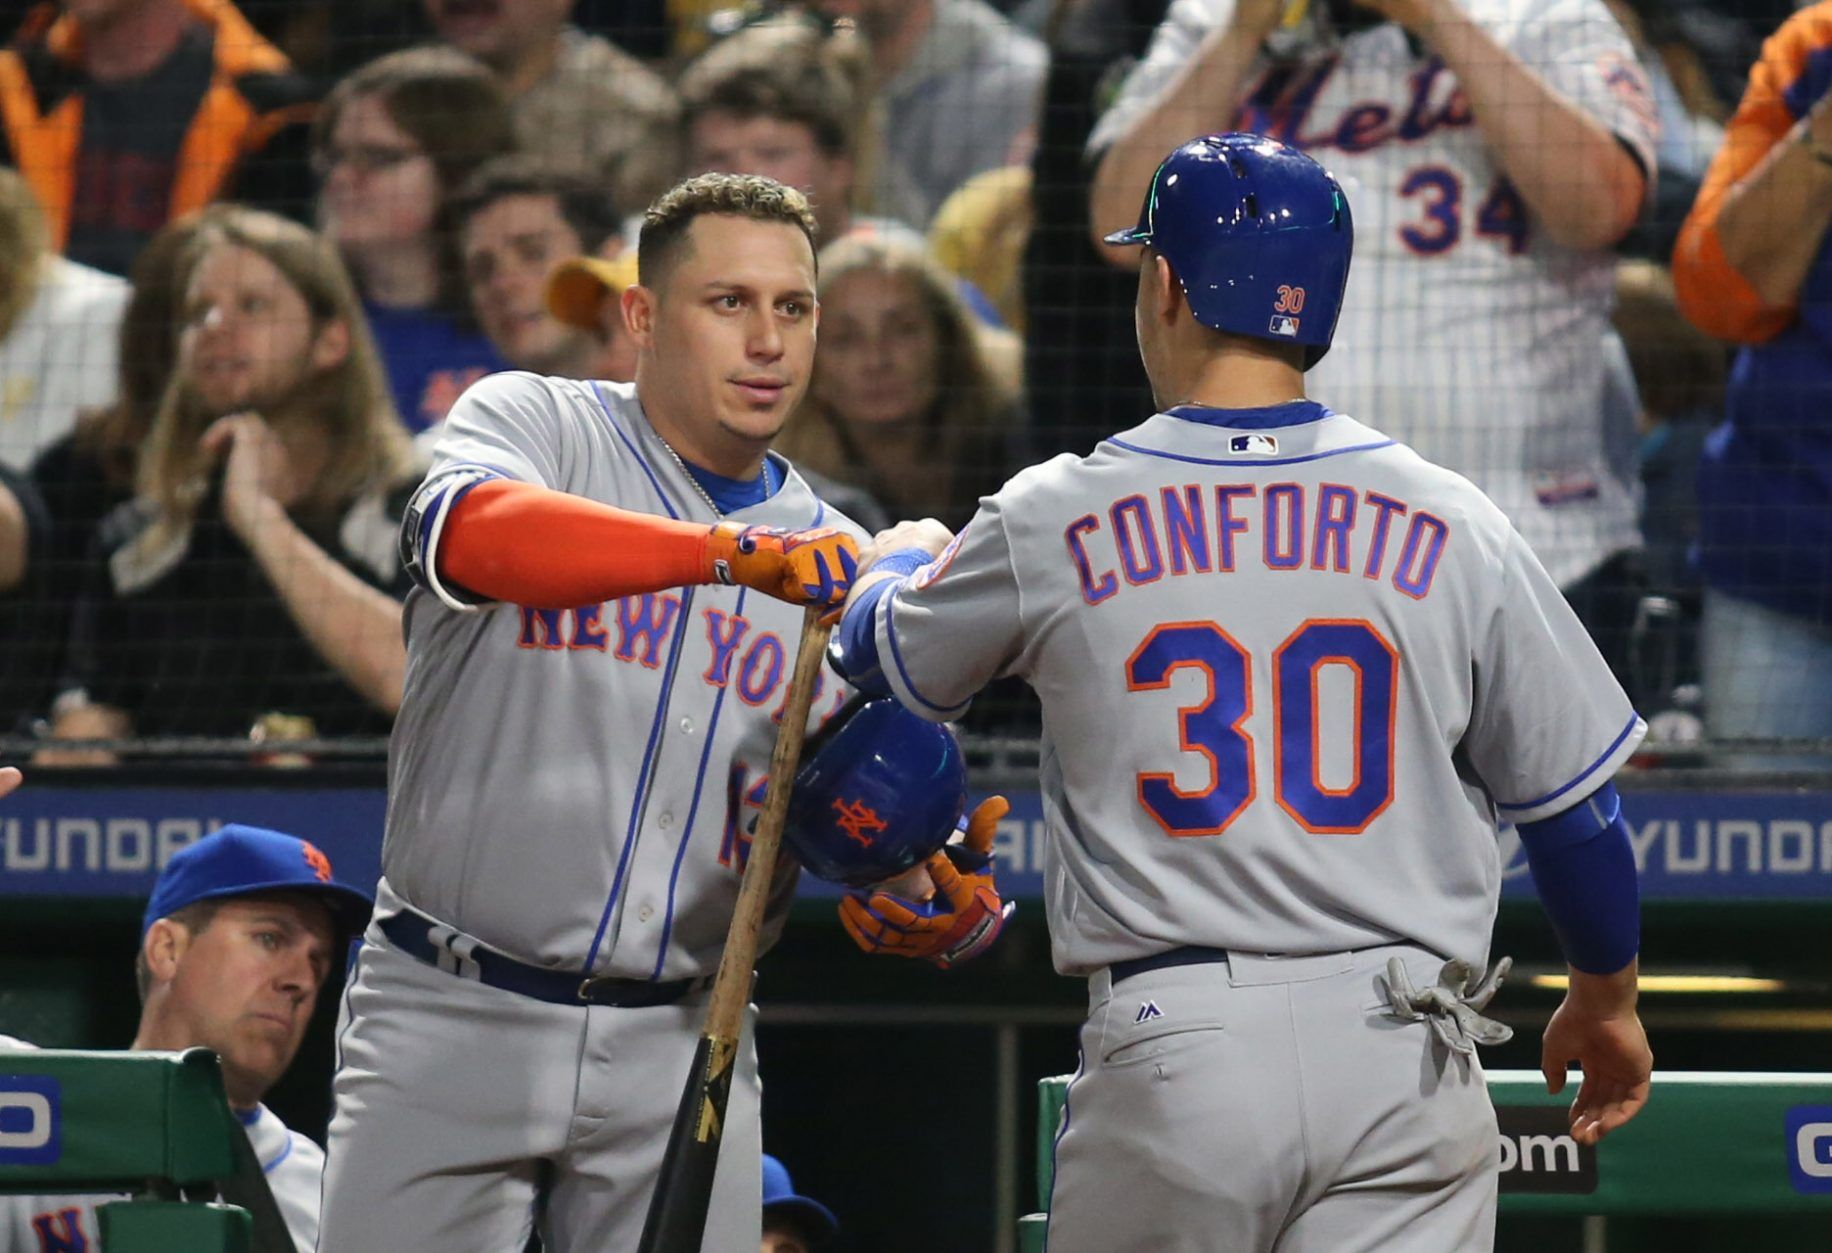 Calm Down: The New York Mets Situation Isn't All That Horrific